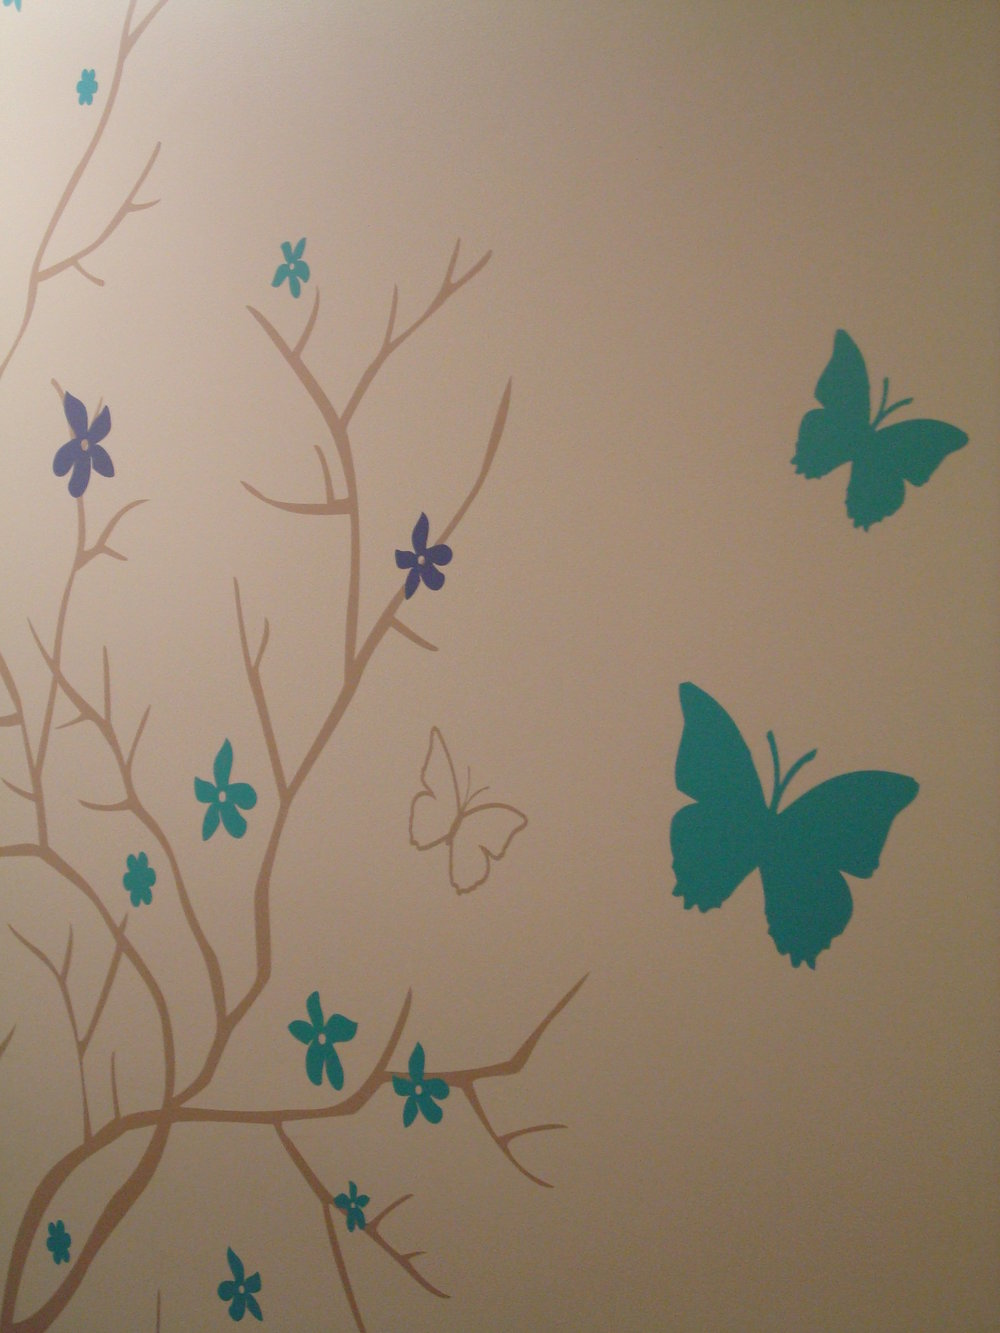 Wall Tattoo Mural Part 2 by Fine Art Matters for a Children's Hearing Center in LA